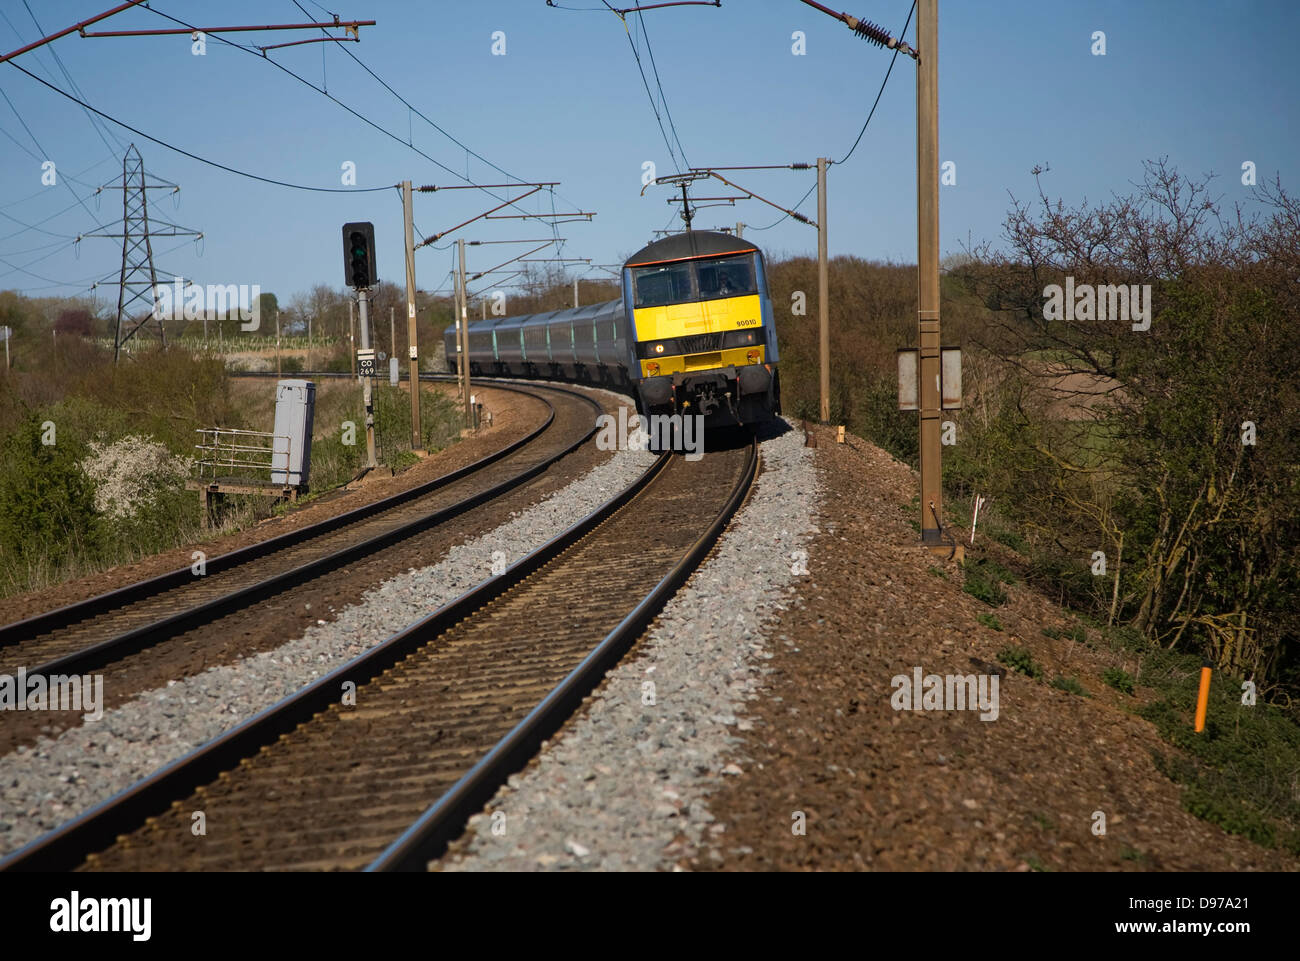 Greater Anglia Class 90 electric locomotive train on the Norwich to London line, England, UK - Stock Image